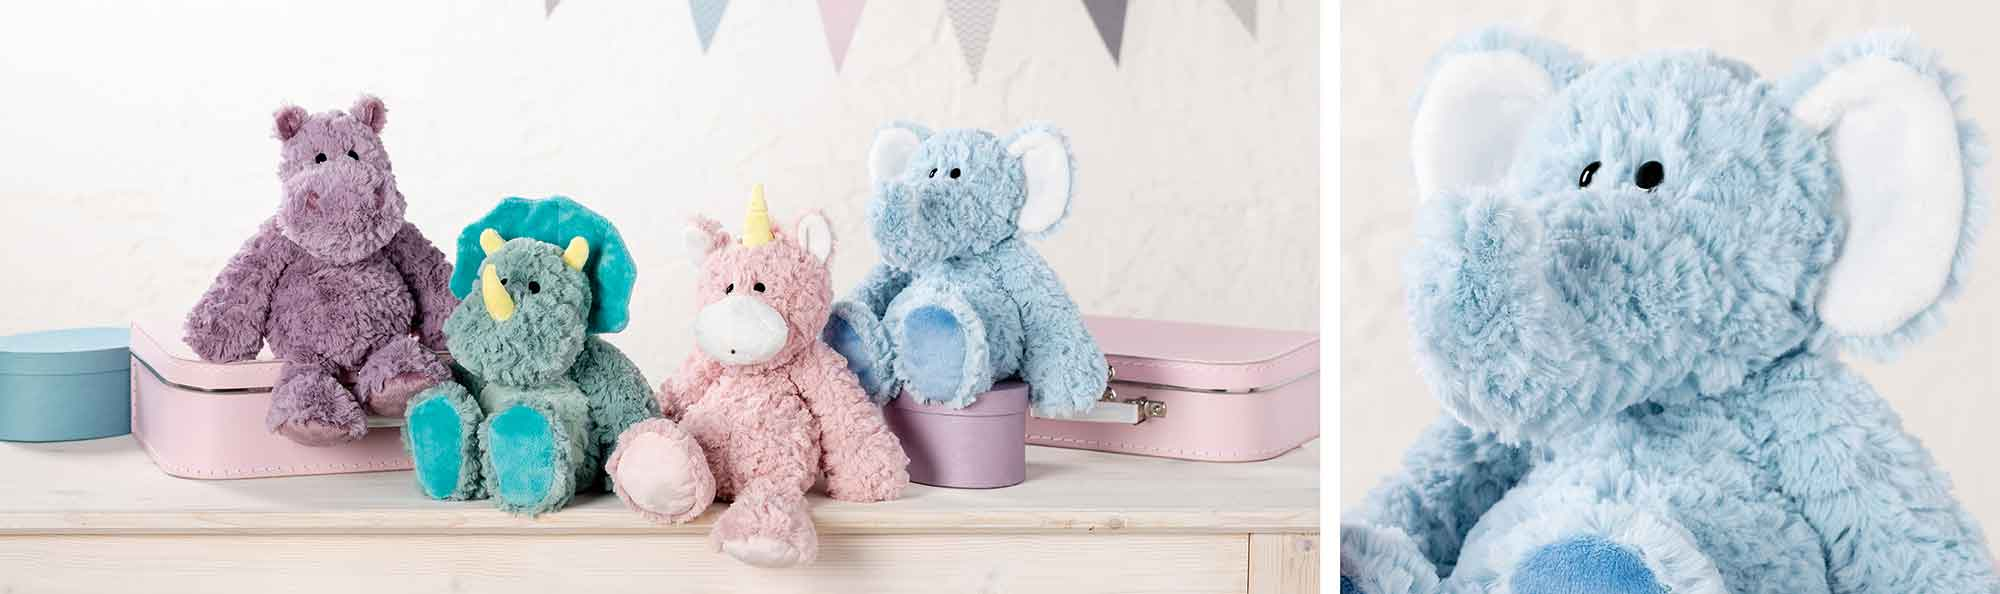 four colored stuffed animals and a close up of the blue elephant